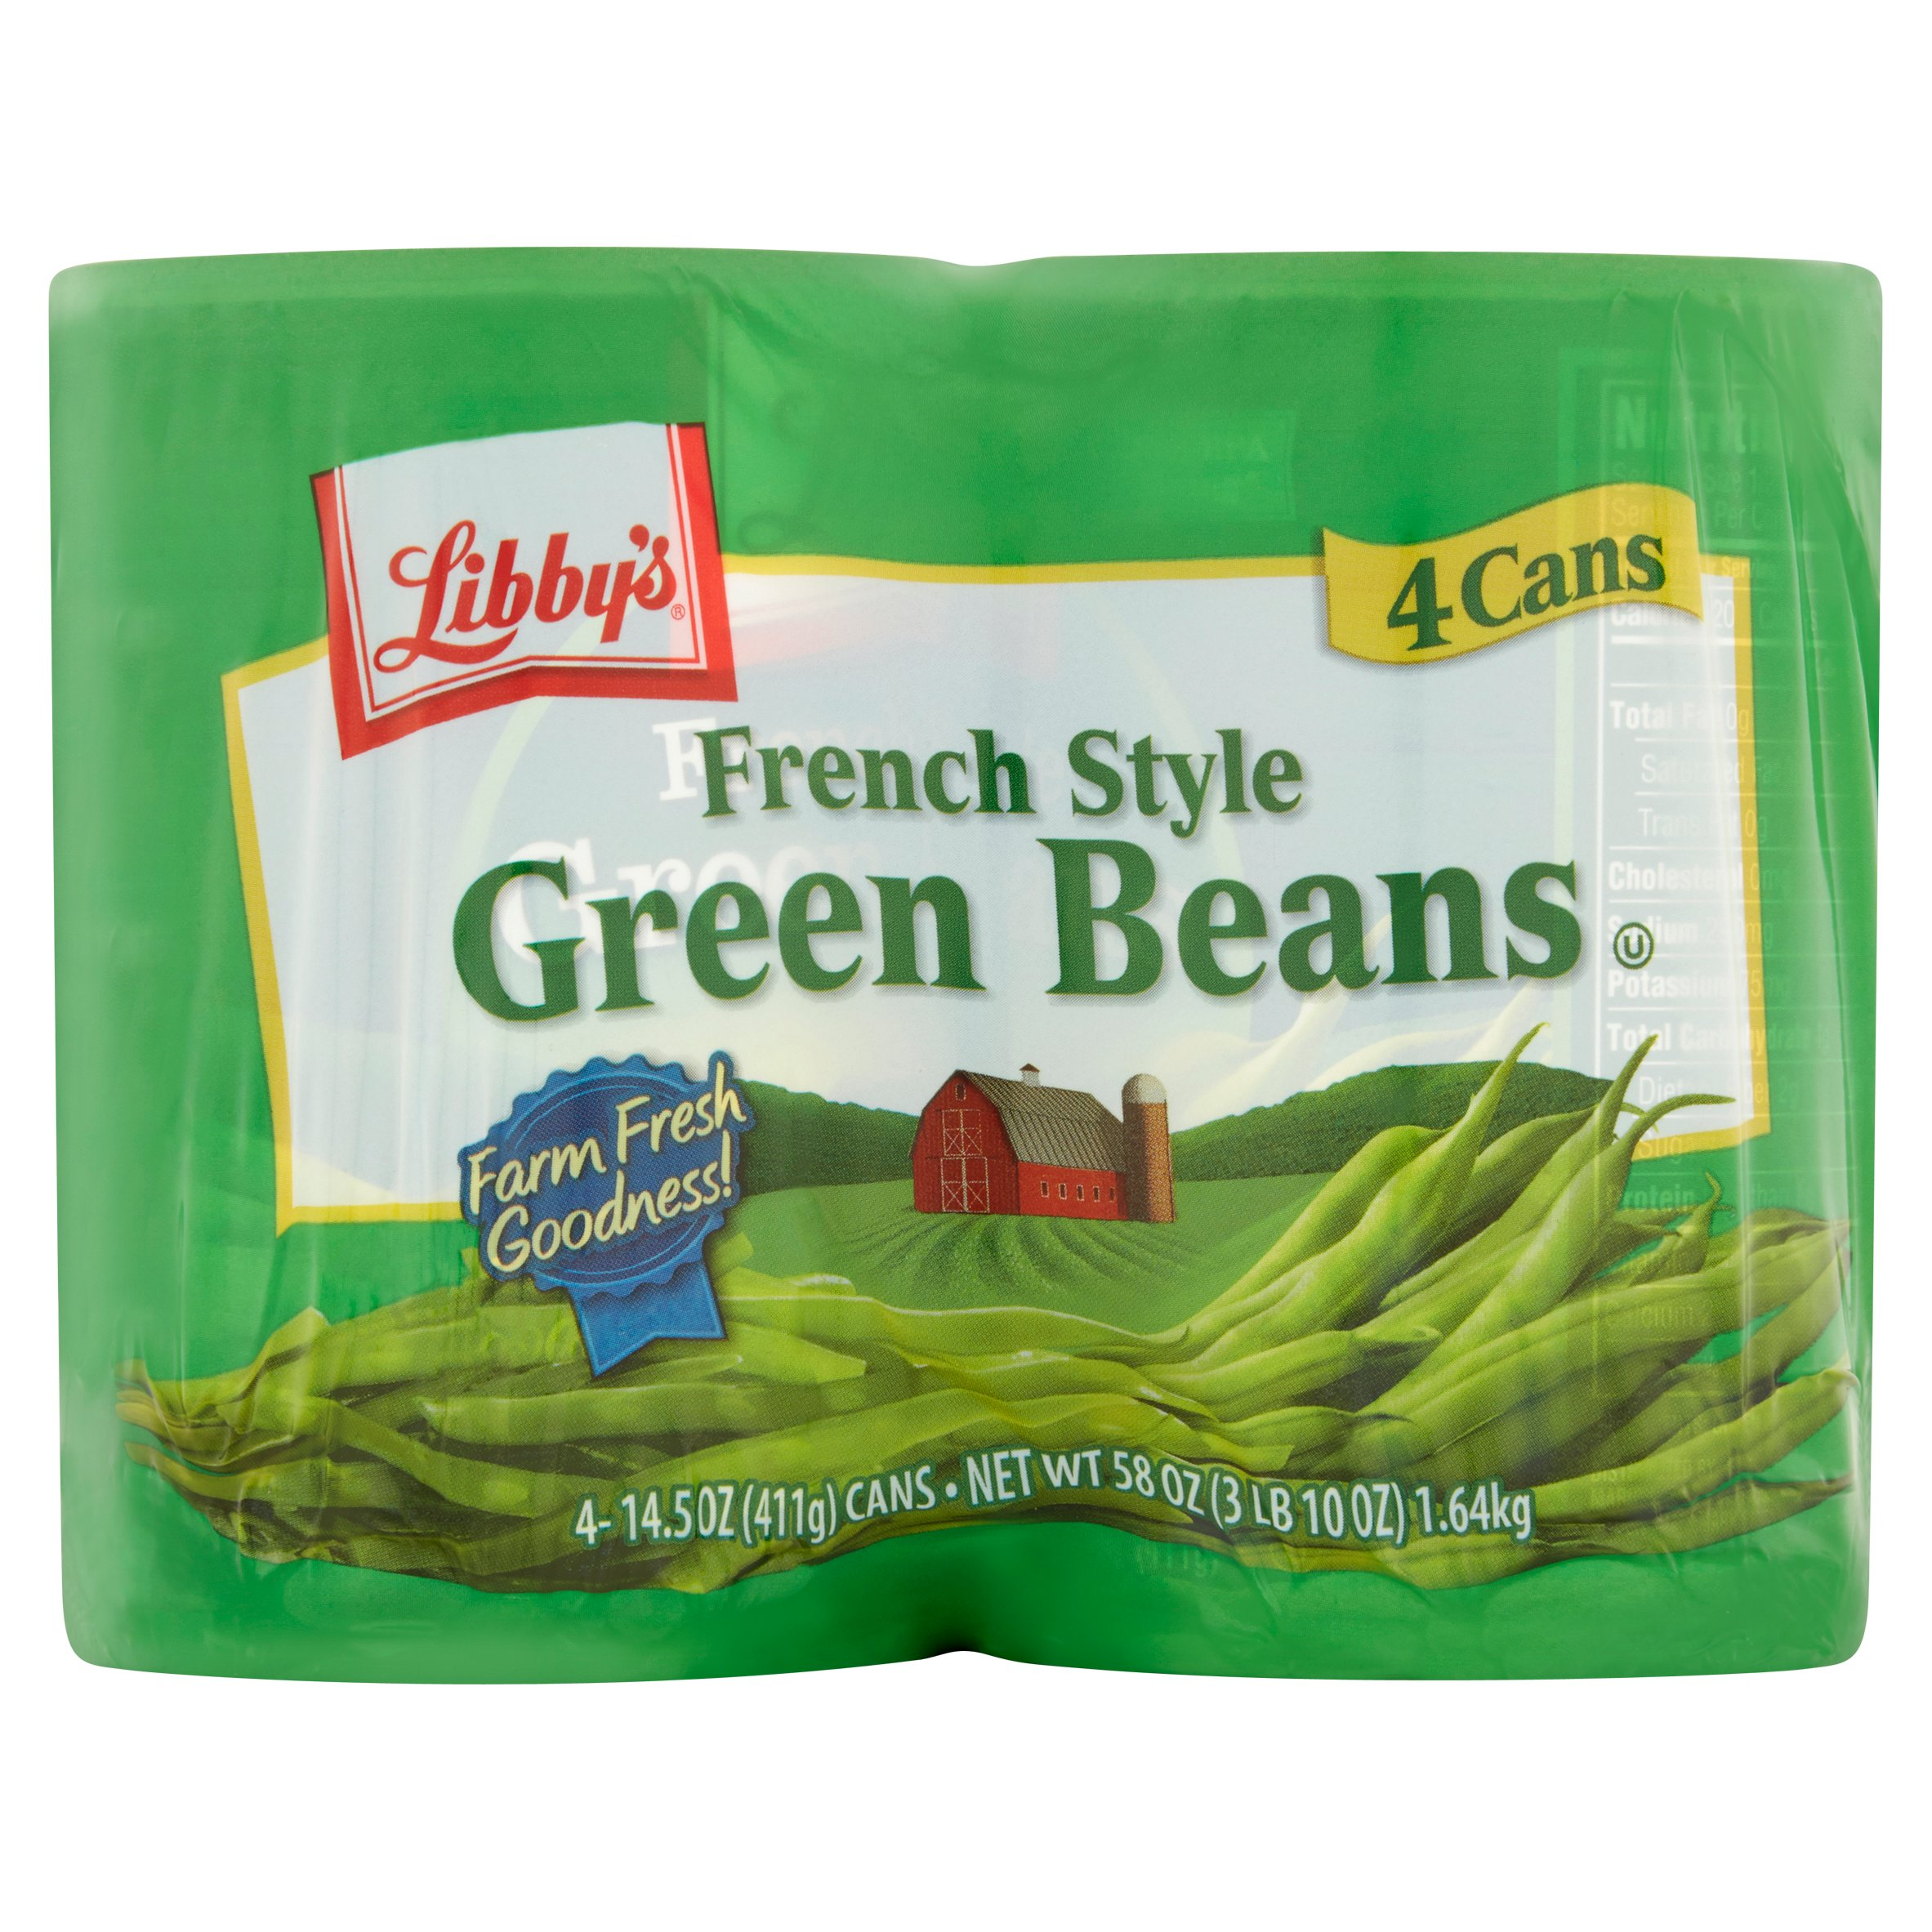 (8 Cans) Libby's French Style Green Beans, 14.5 Oz